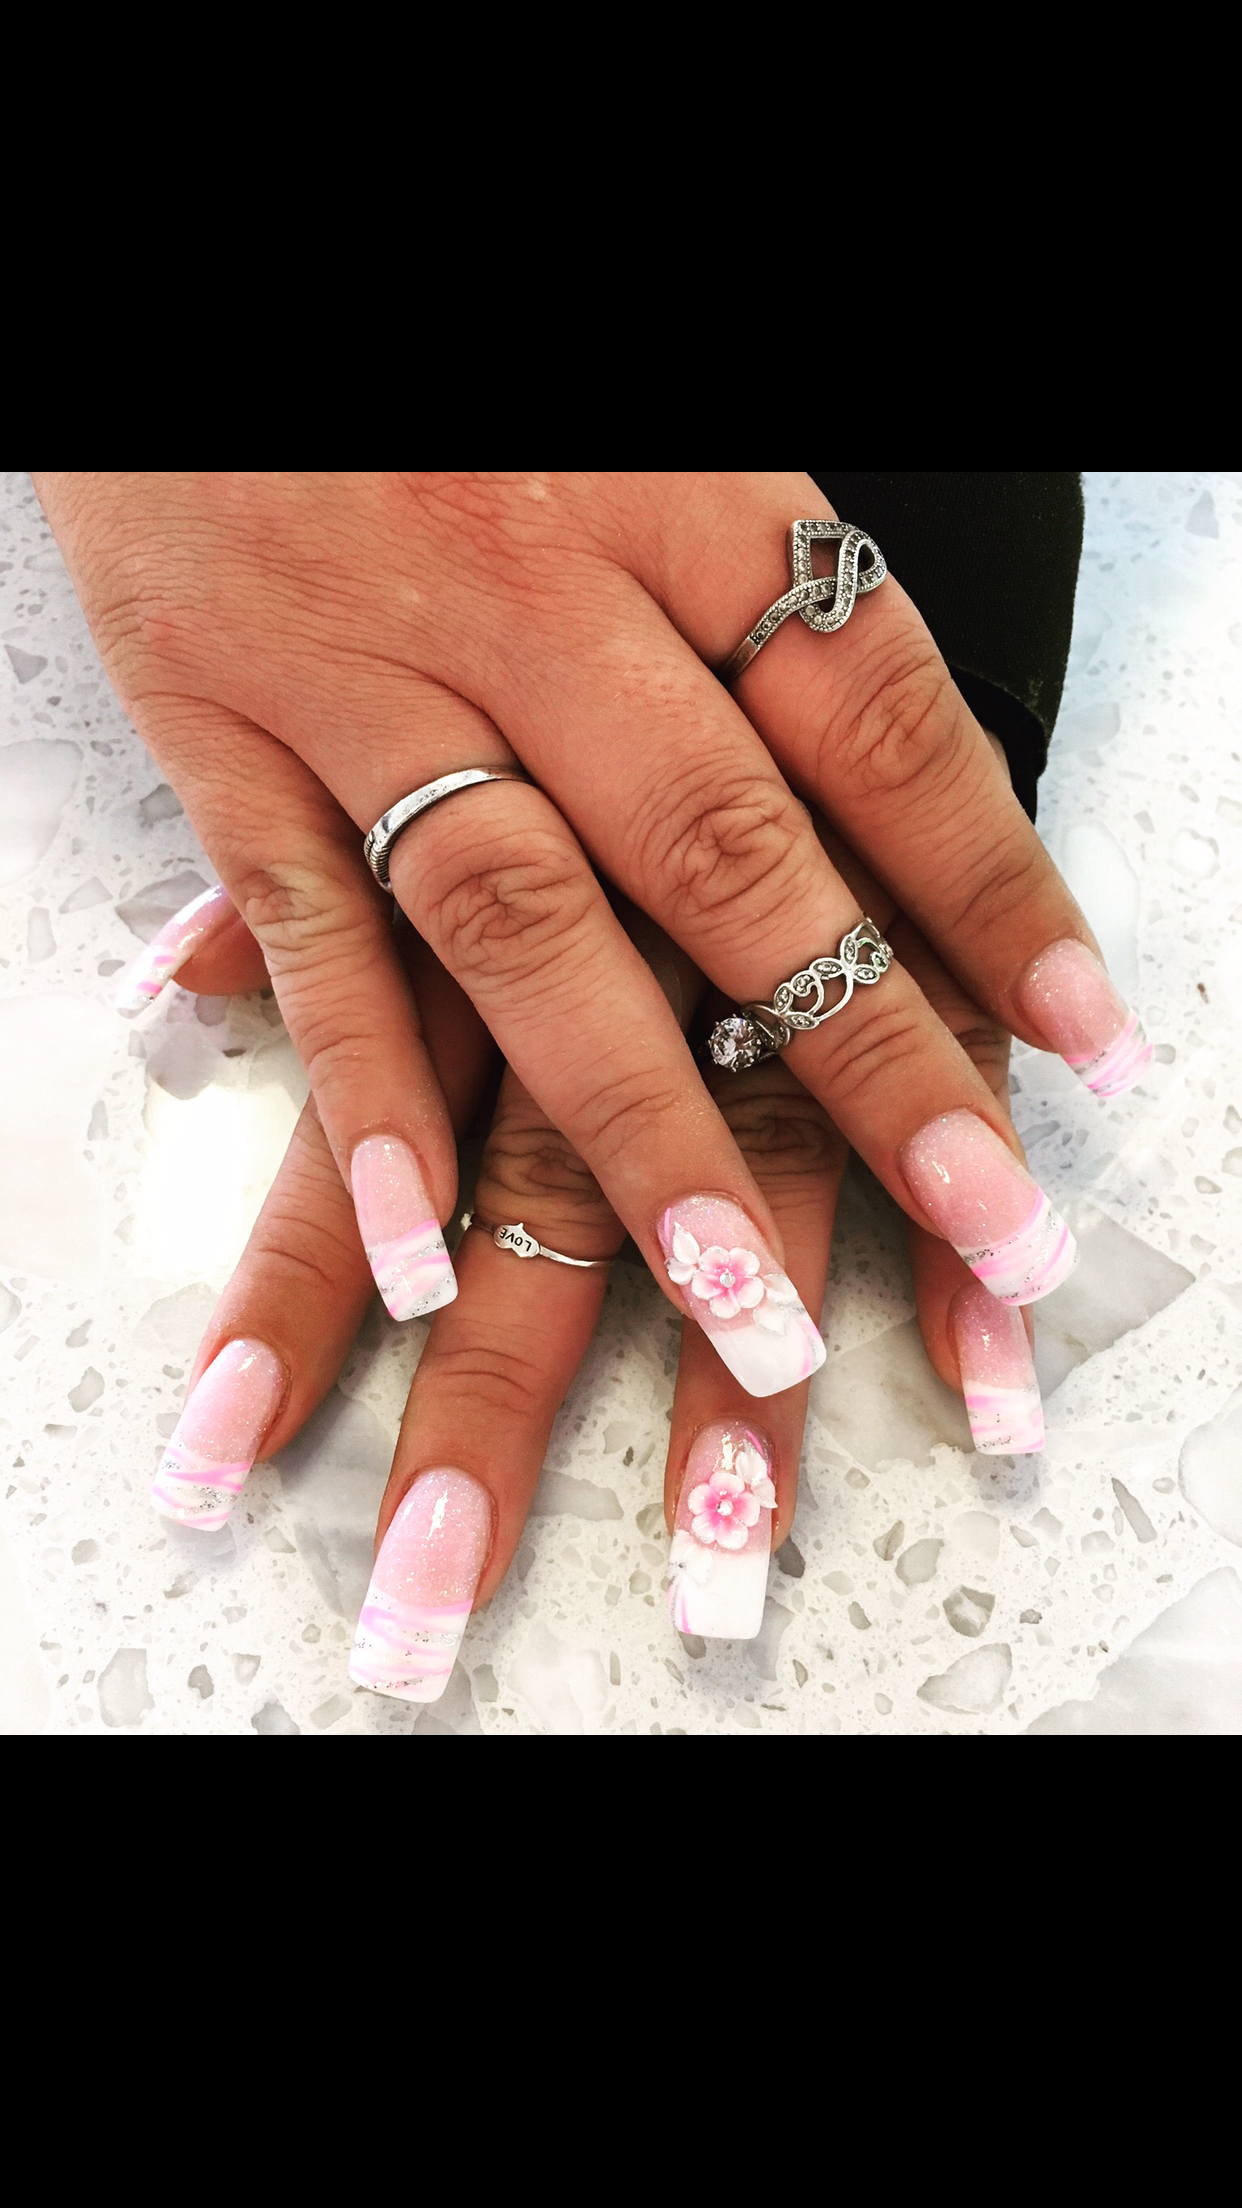 Pink and White Glitter 3D Flower ANC Nail Design Nail Art French Tip - Pink And White Glitter 3D Flower ANC Nail Design Nail Art French Tip